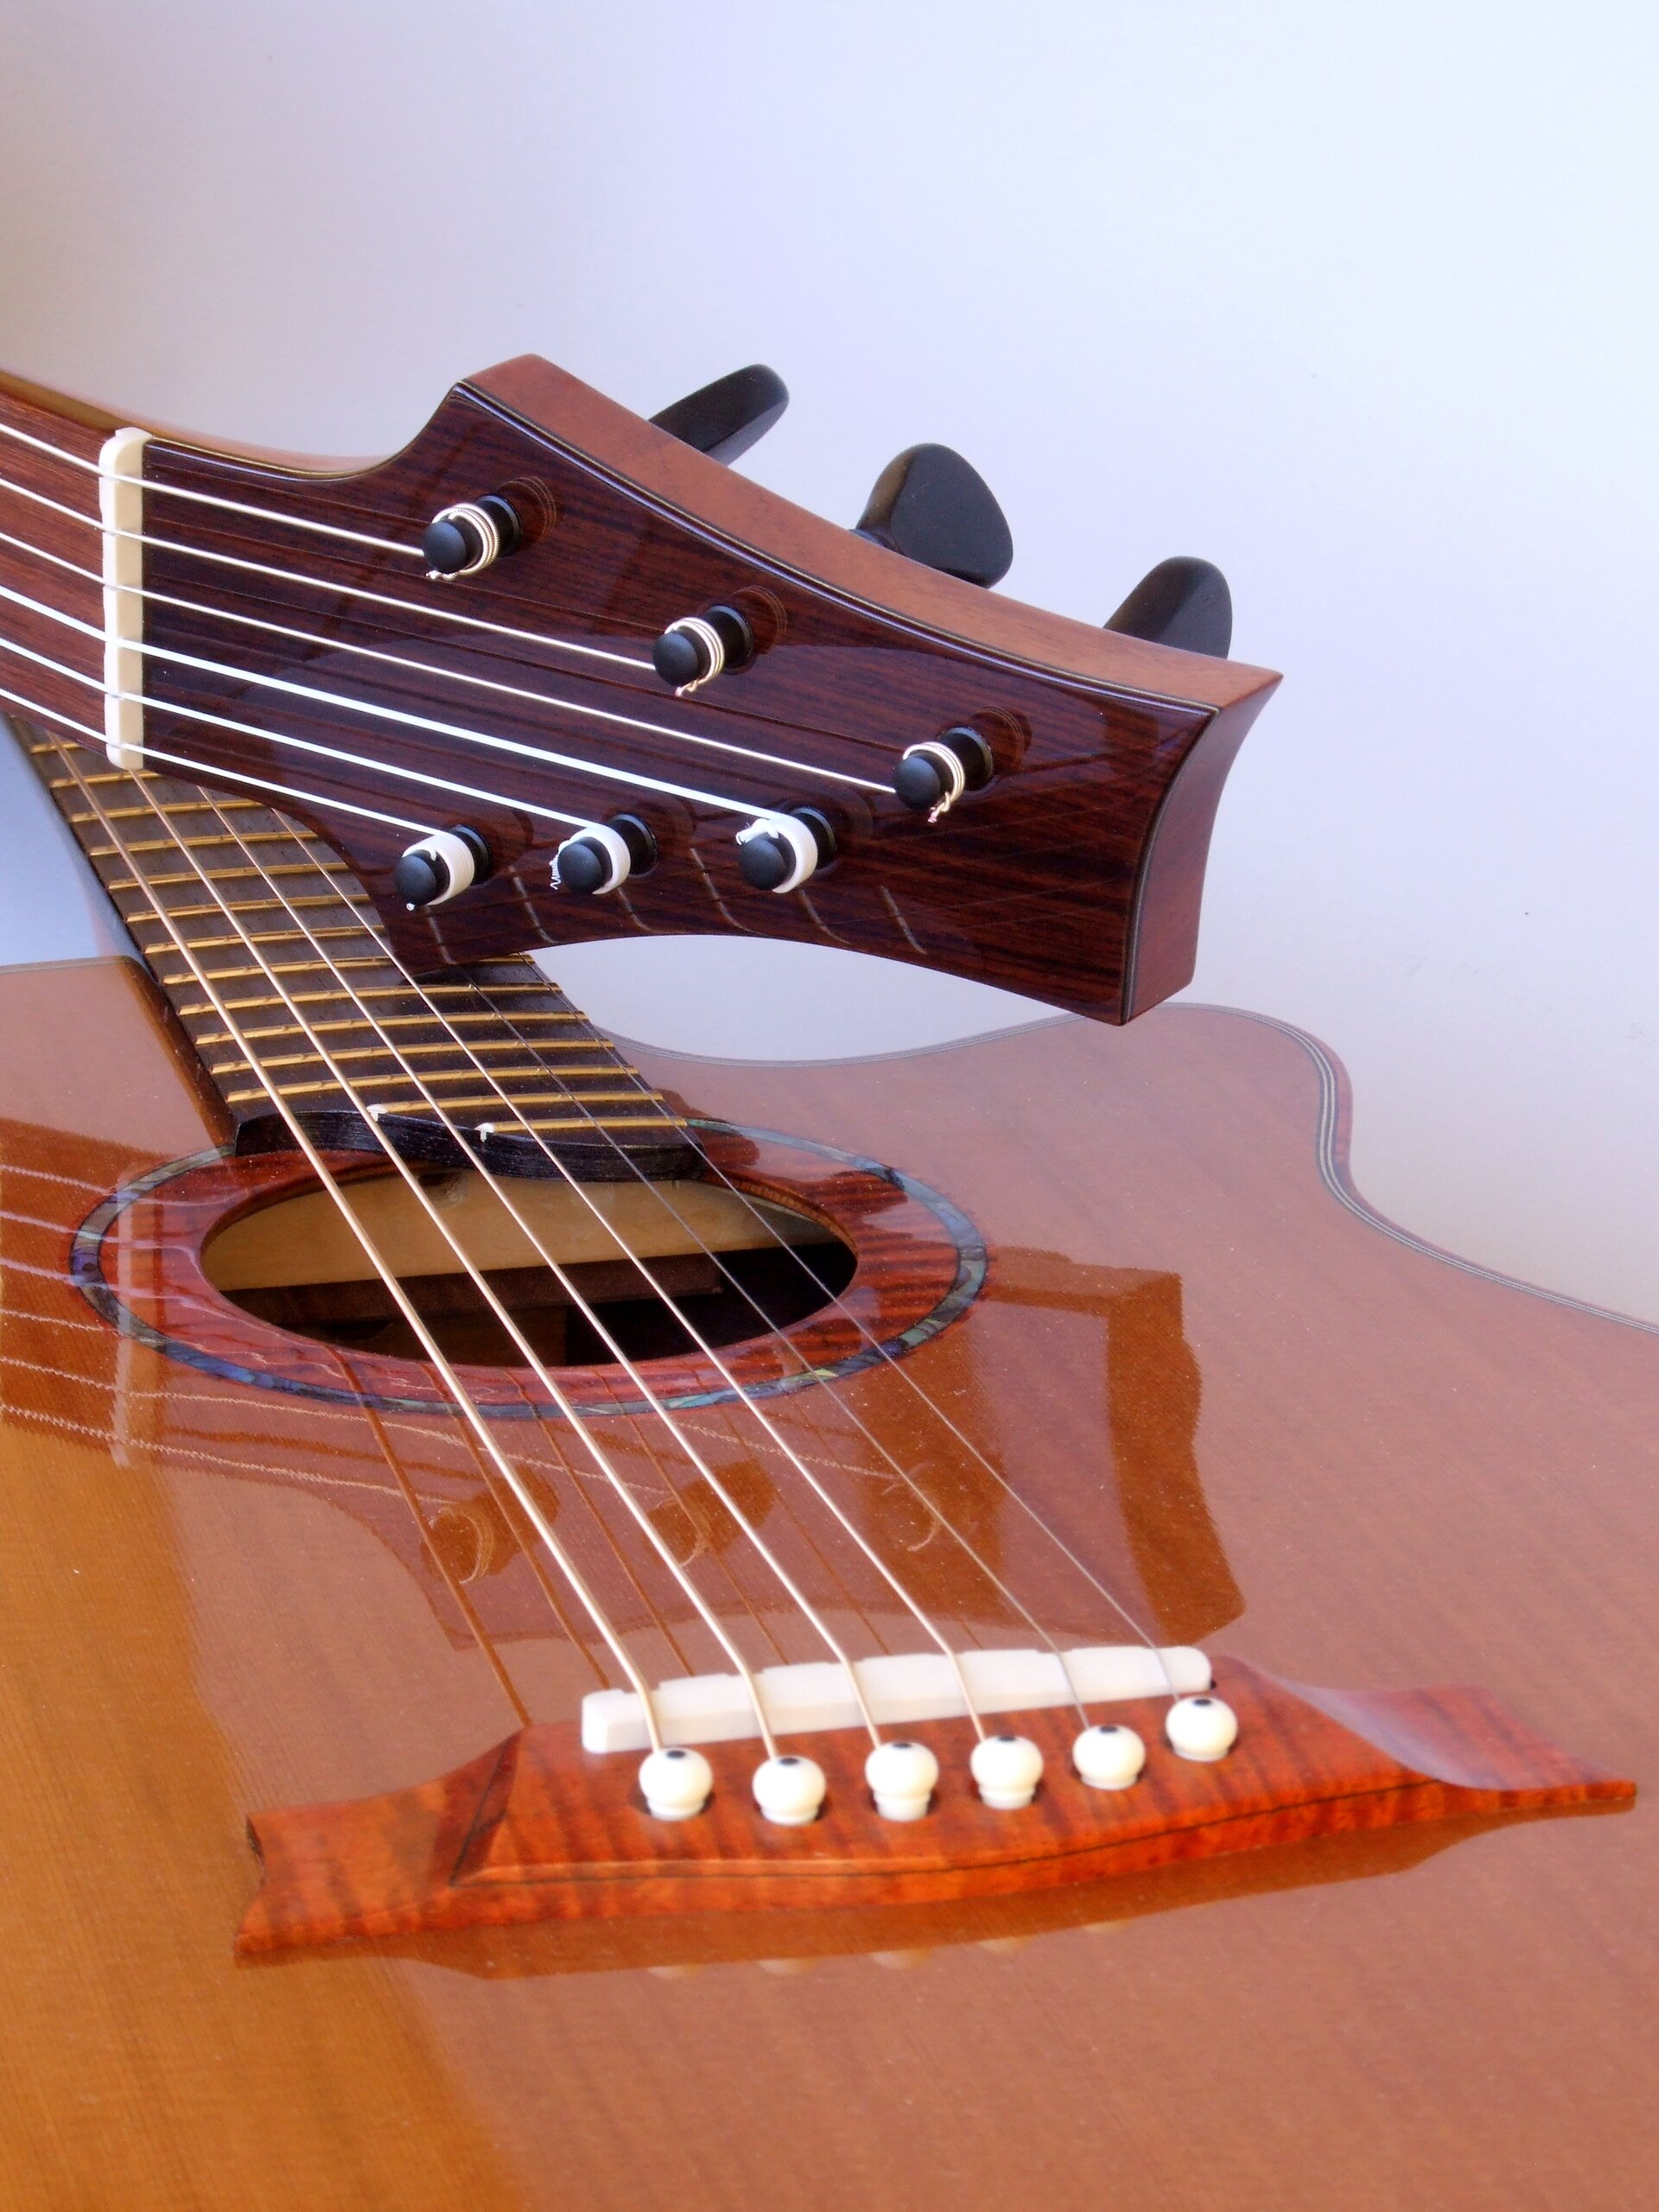 Classical guitar headstock resting on a steel string guitar